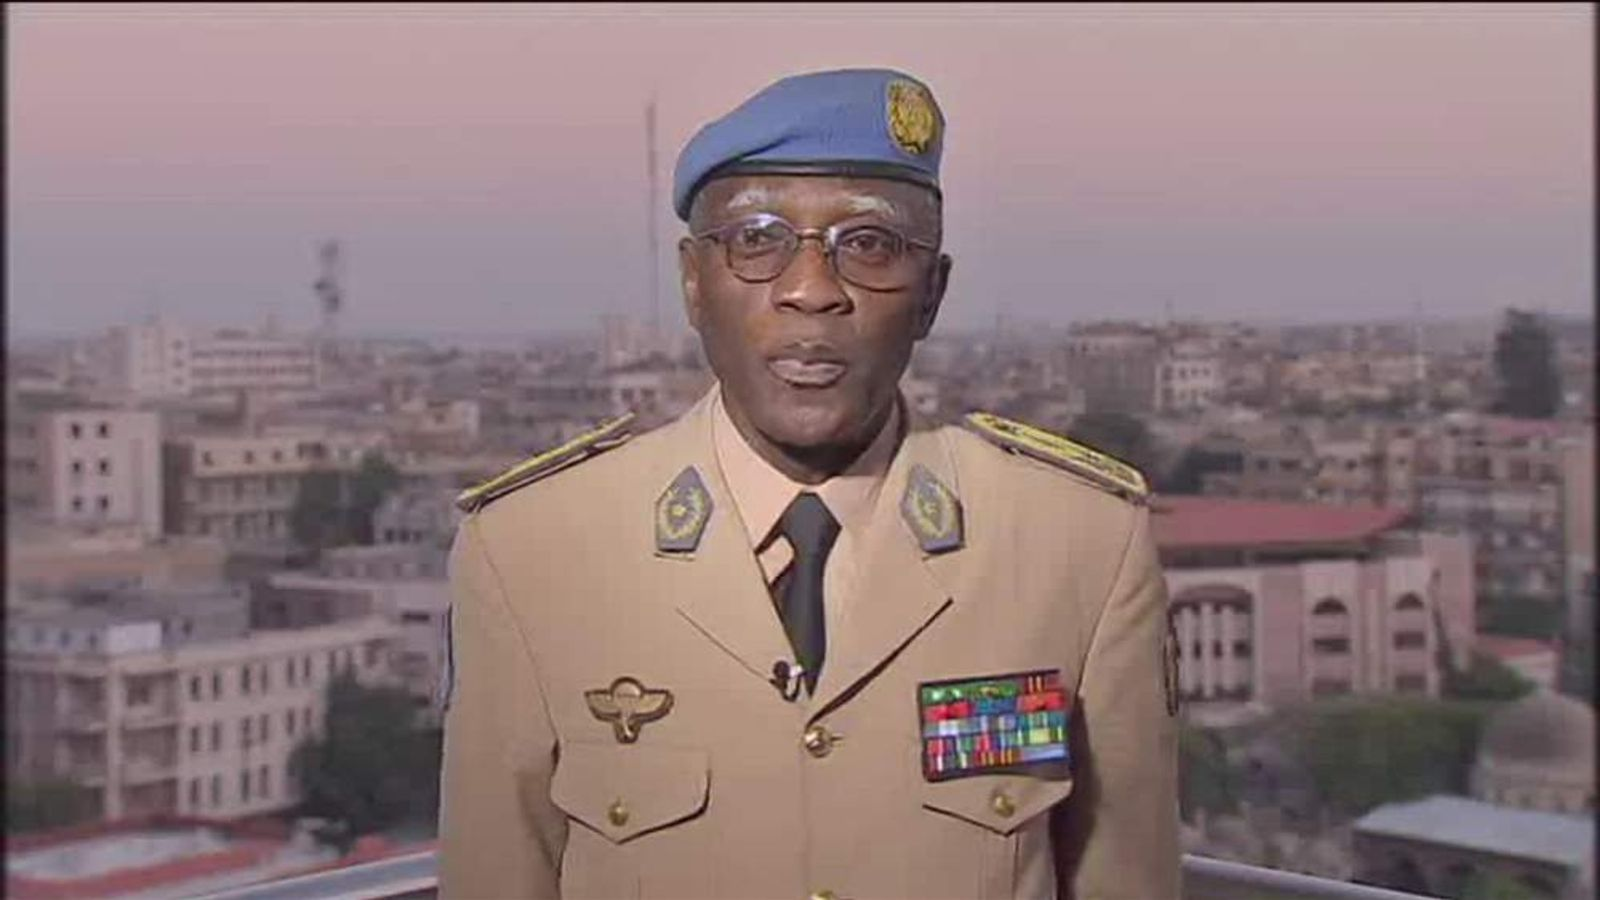 Head of UN Supervision Mission in Syria Lieutenant General Babacar Gaye